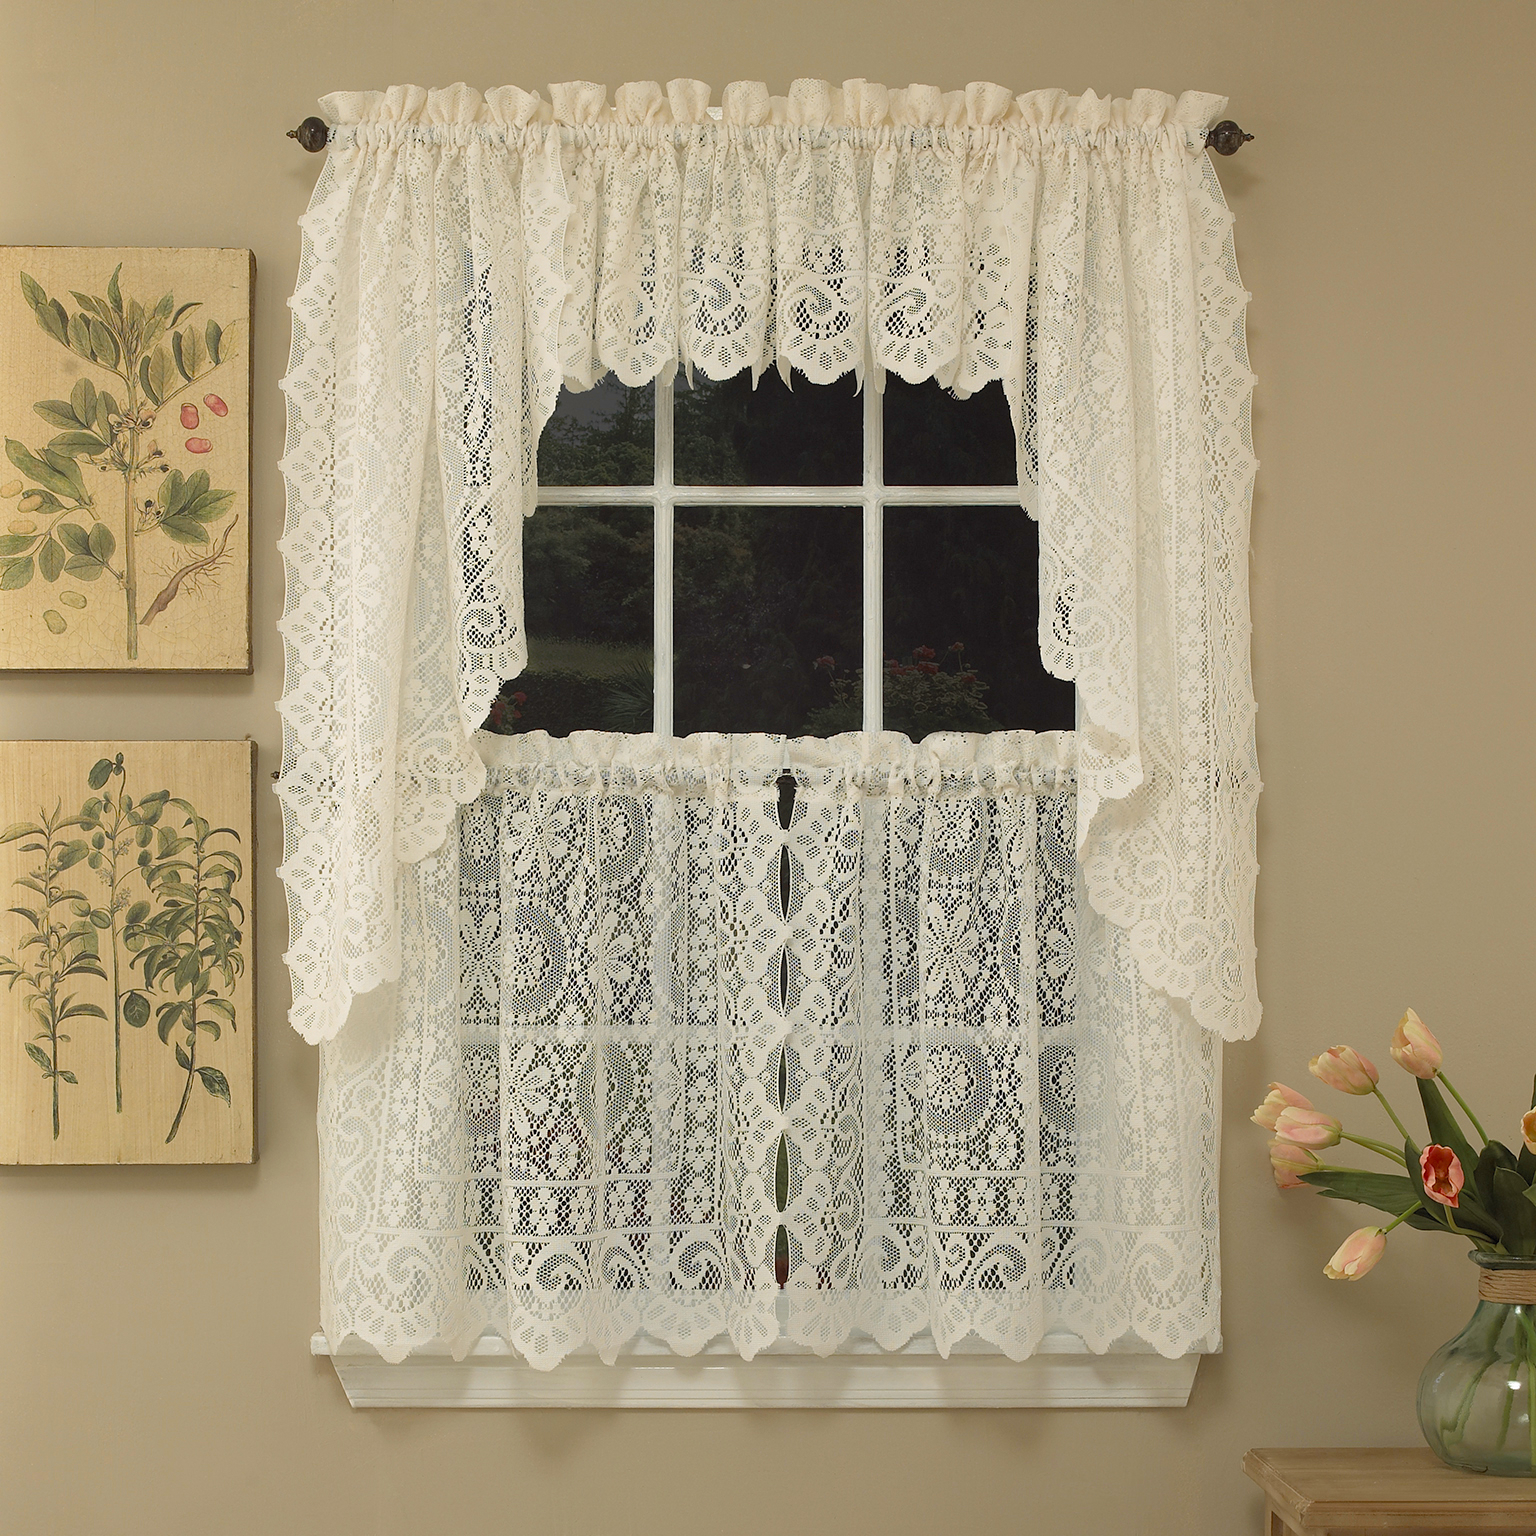 Most Popular Details About Hopewell Heavy Cream Lace Kitchen Curtain Choice Of Tier Valance Or Swag With Floral Lace Rod Pocket Kitchen Curtain Valance And Tiers Sets (View 4 of 20)